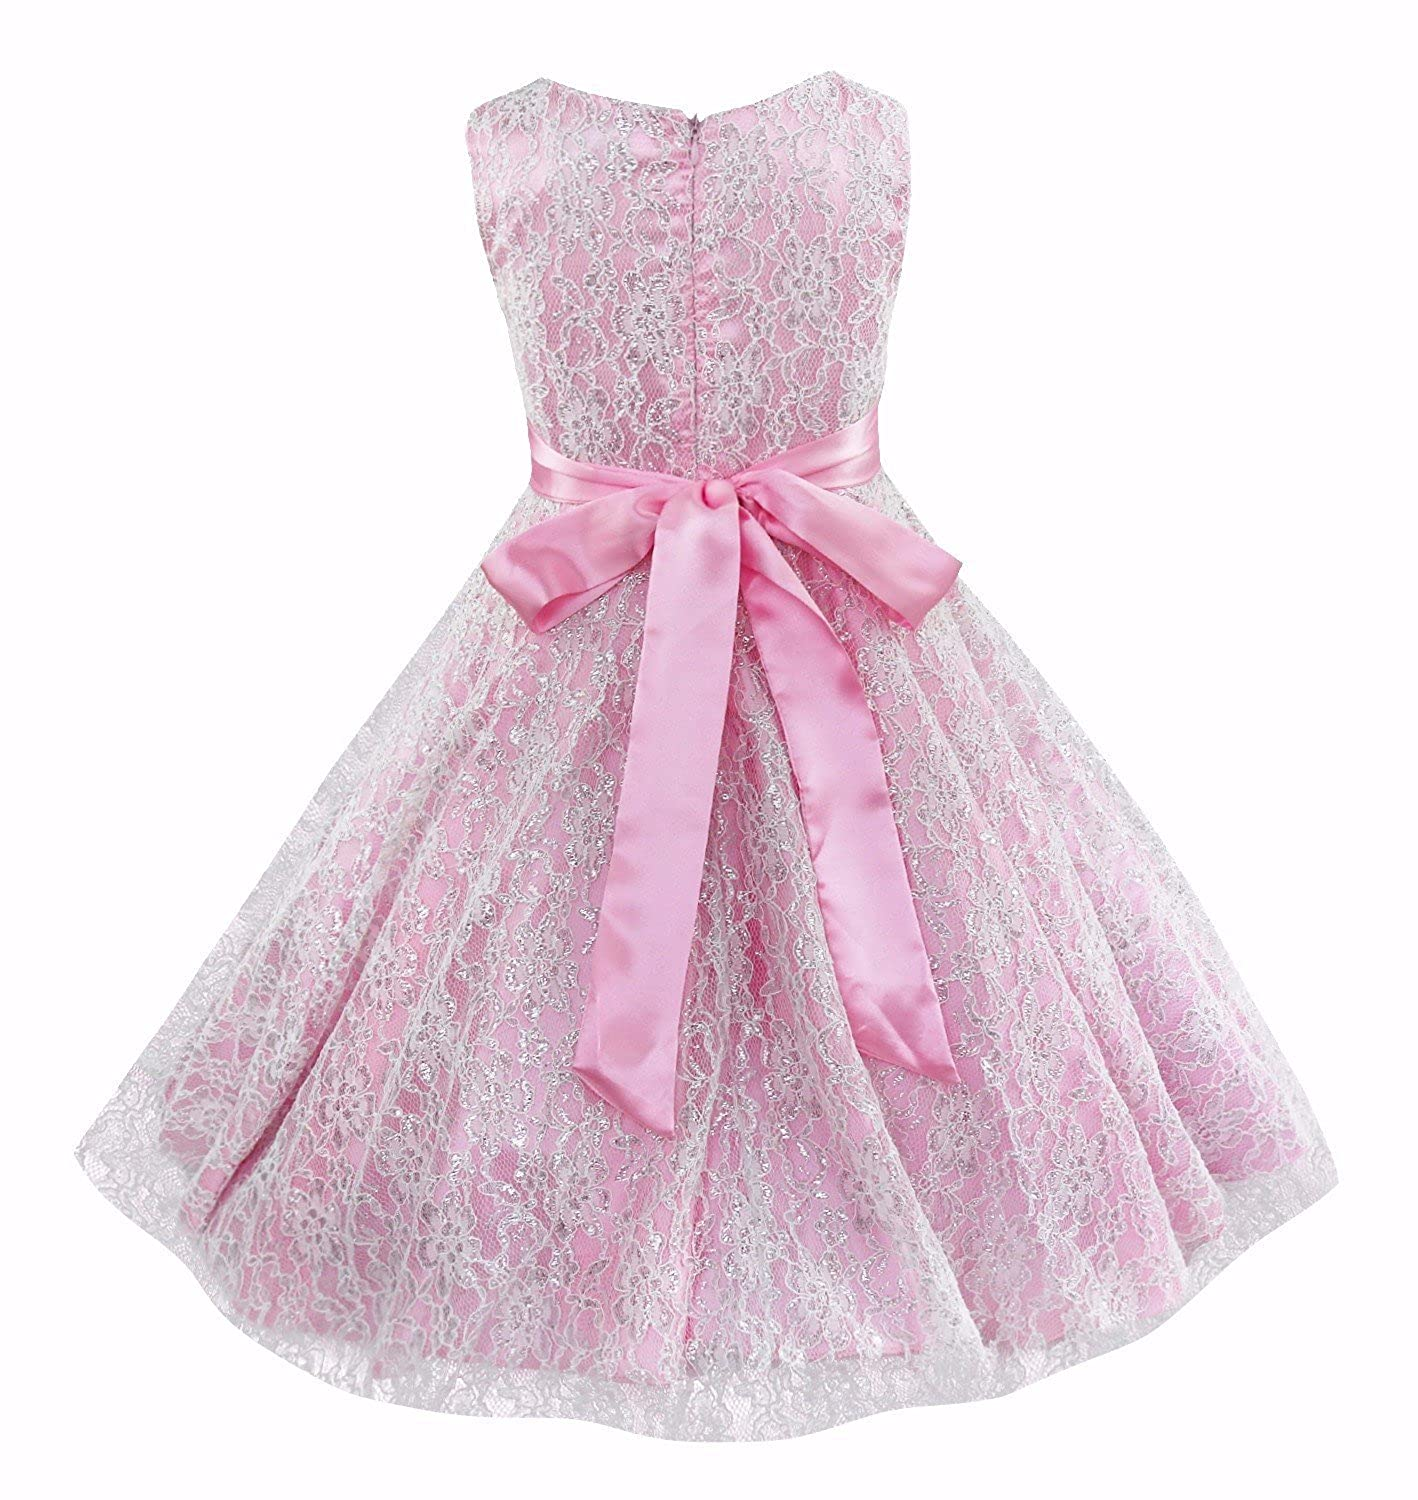 iEFiEL Girls V-Neck Lace Flower Girls Dress Wedding Bridesmaid Party Dress Prom Party Ball Gown: Amazon.co.uk: Clothing